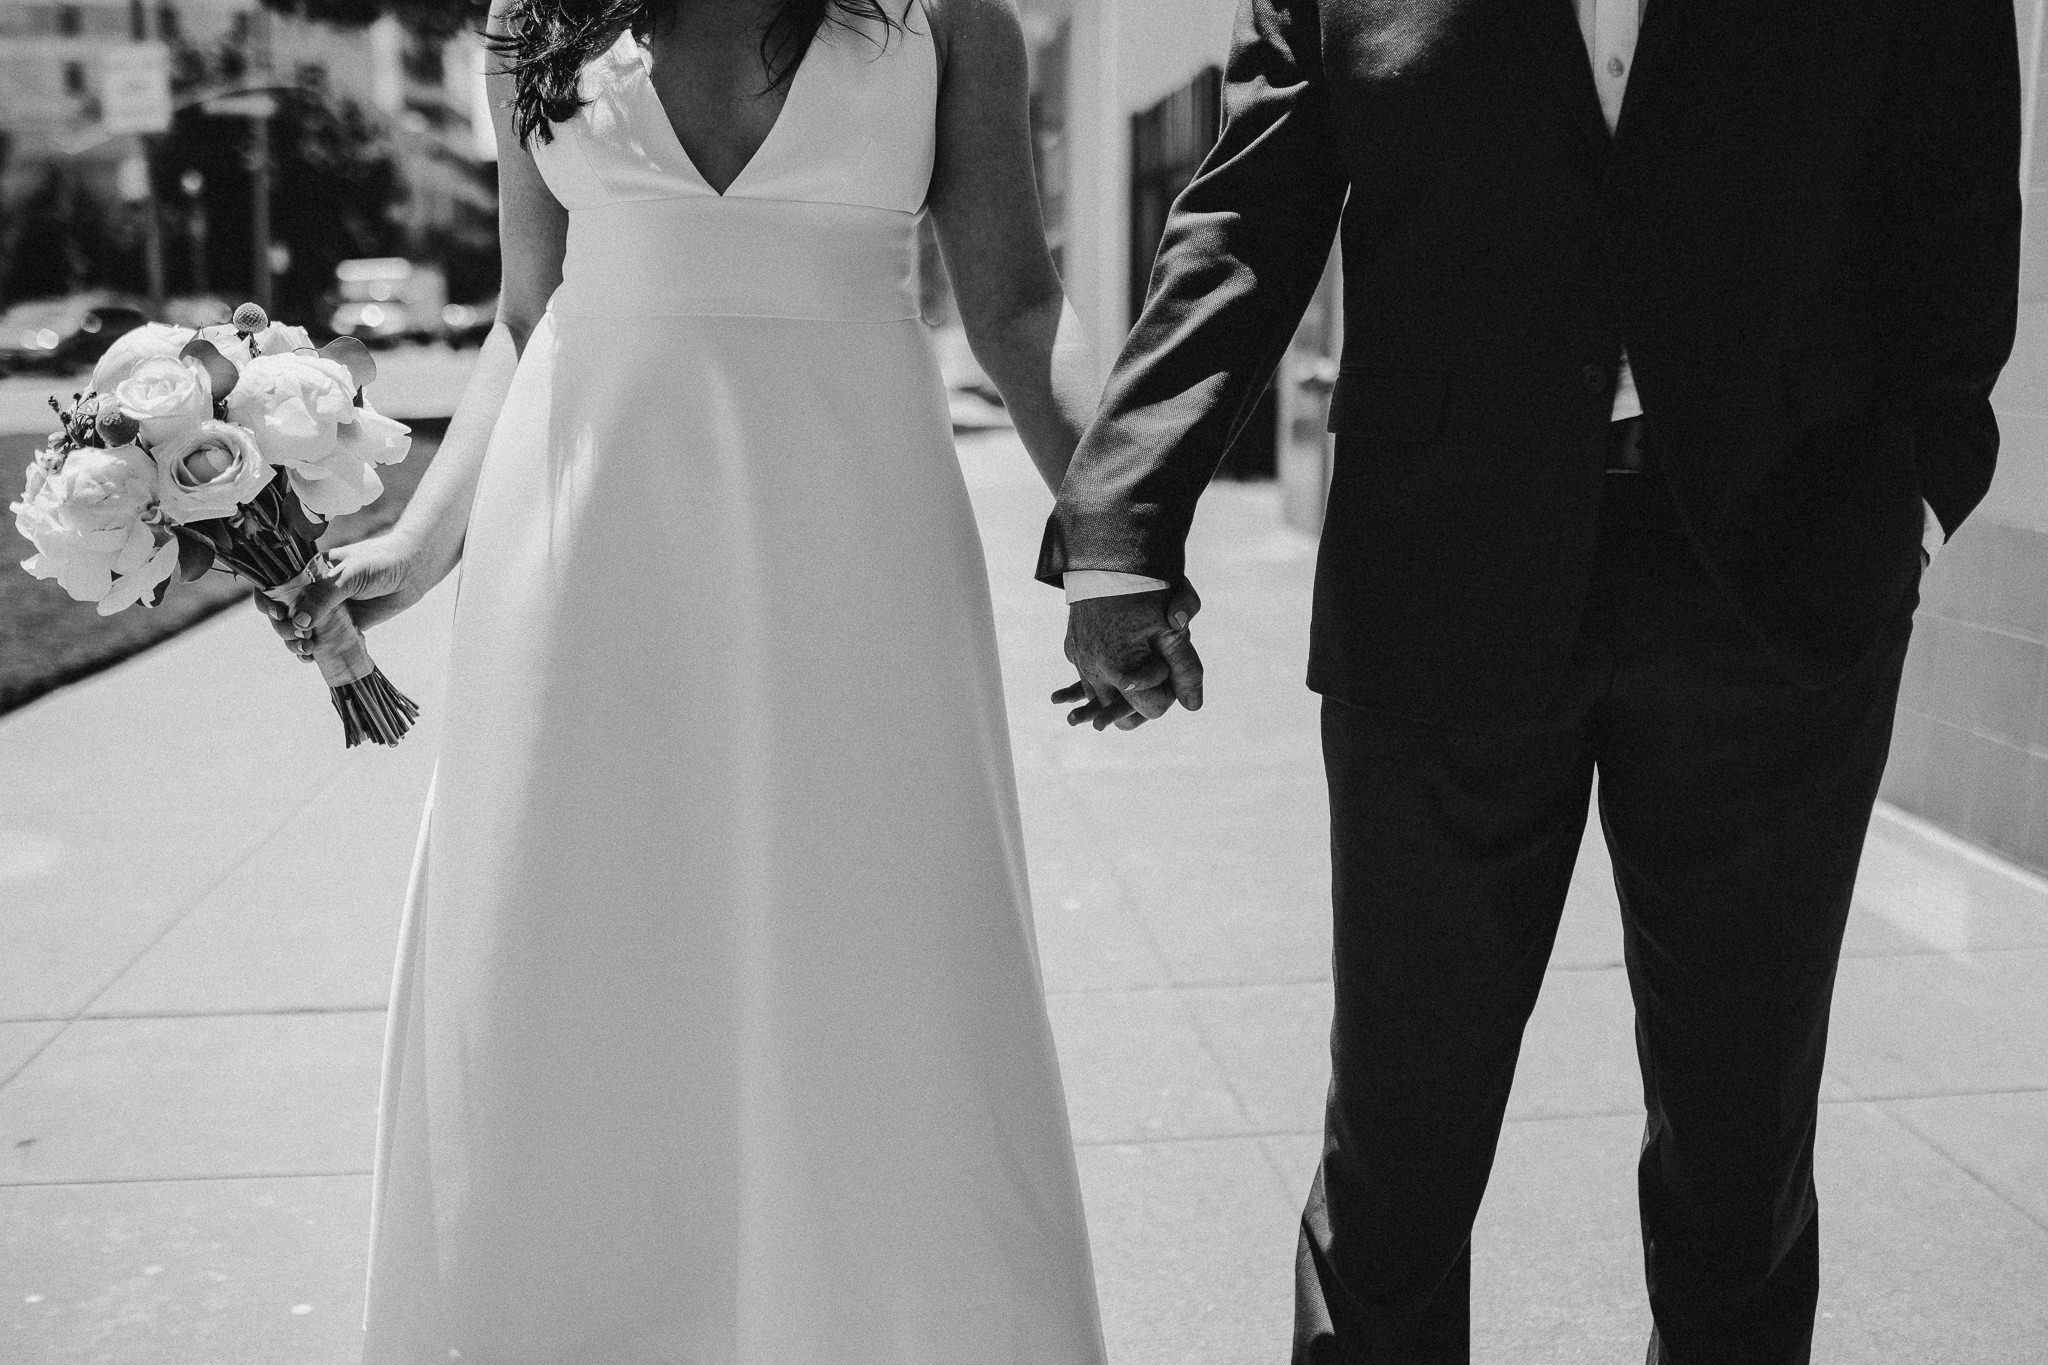 Archer Inspired Photography SF City Hall Elopement Wedding Lifestyle Documentary Affordable Photographer-352.jpg